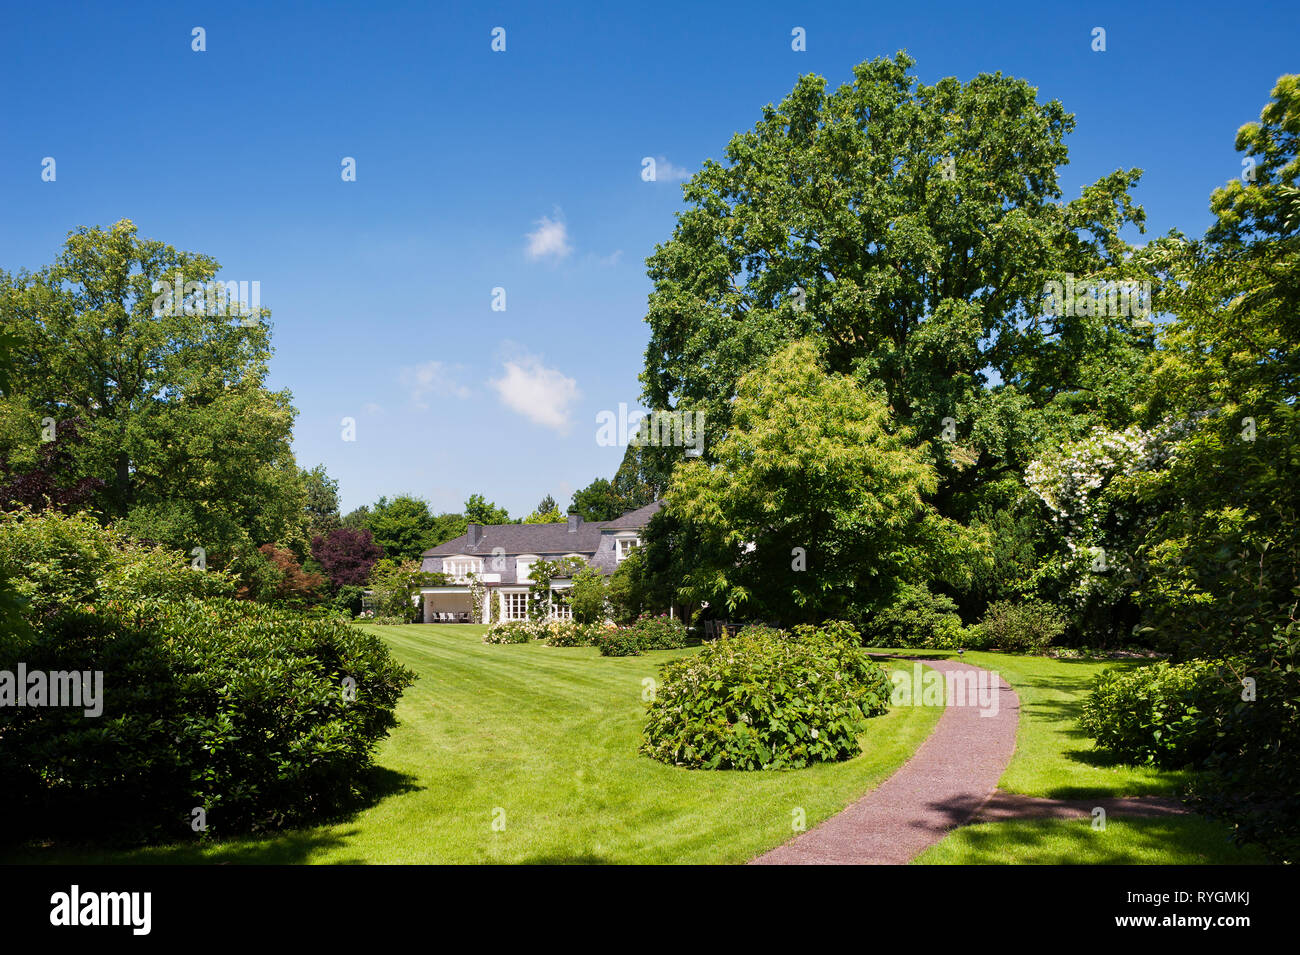 Lawn and trees by house - Stock Image